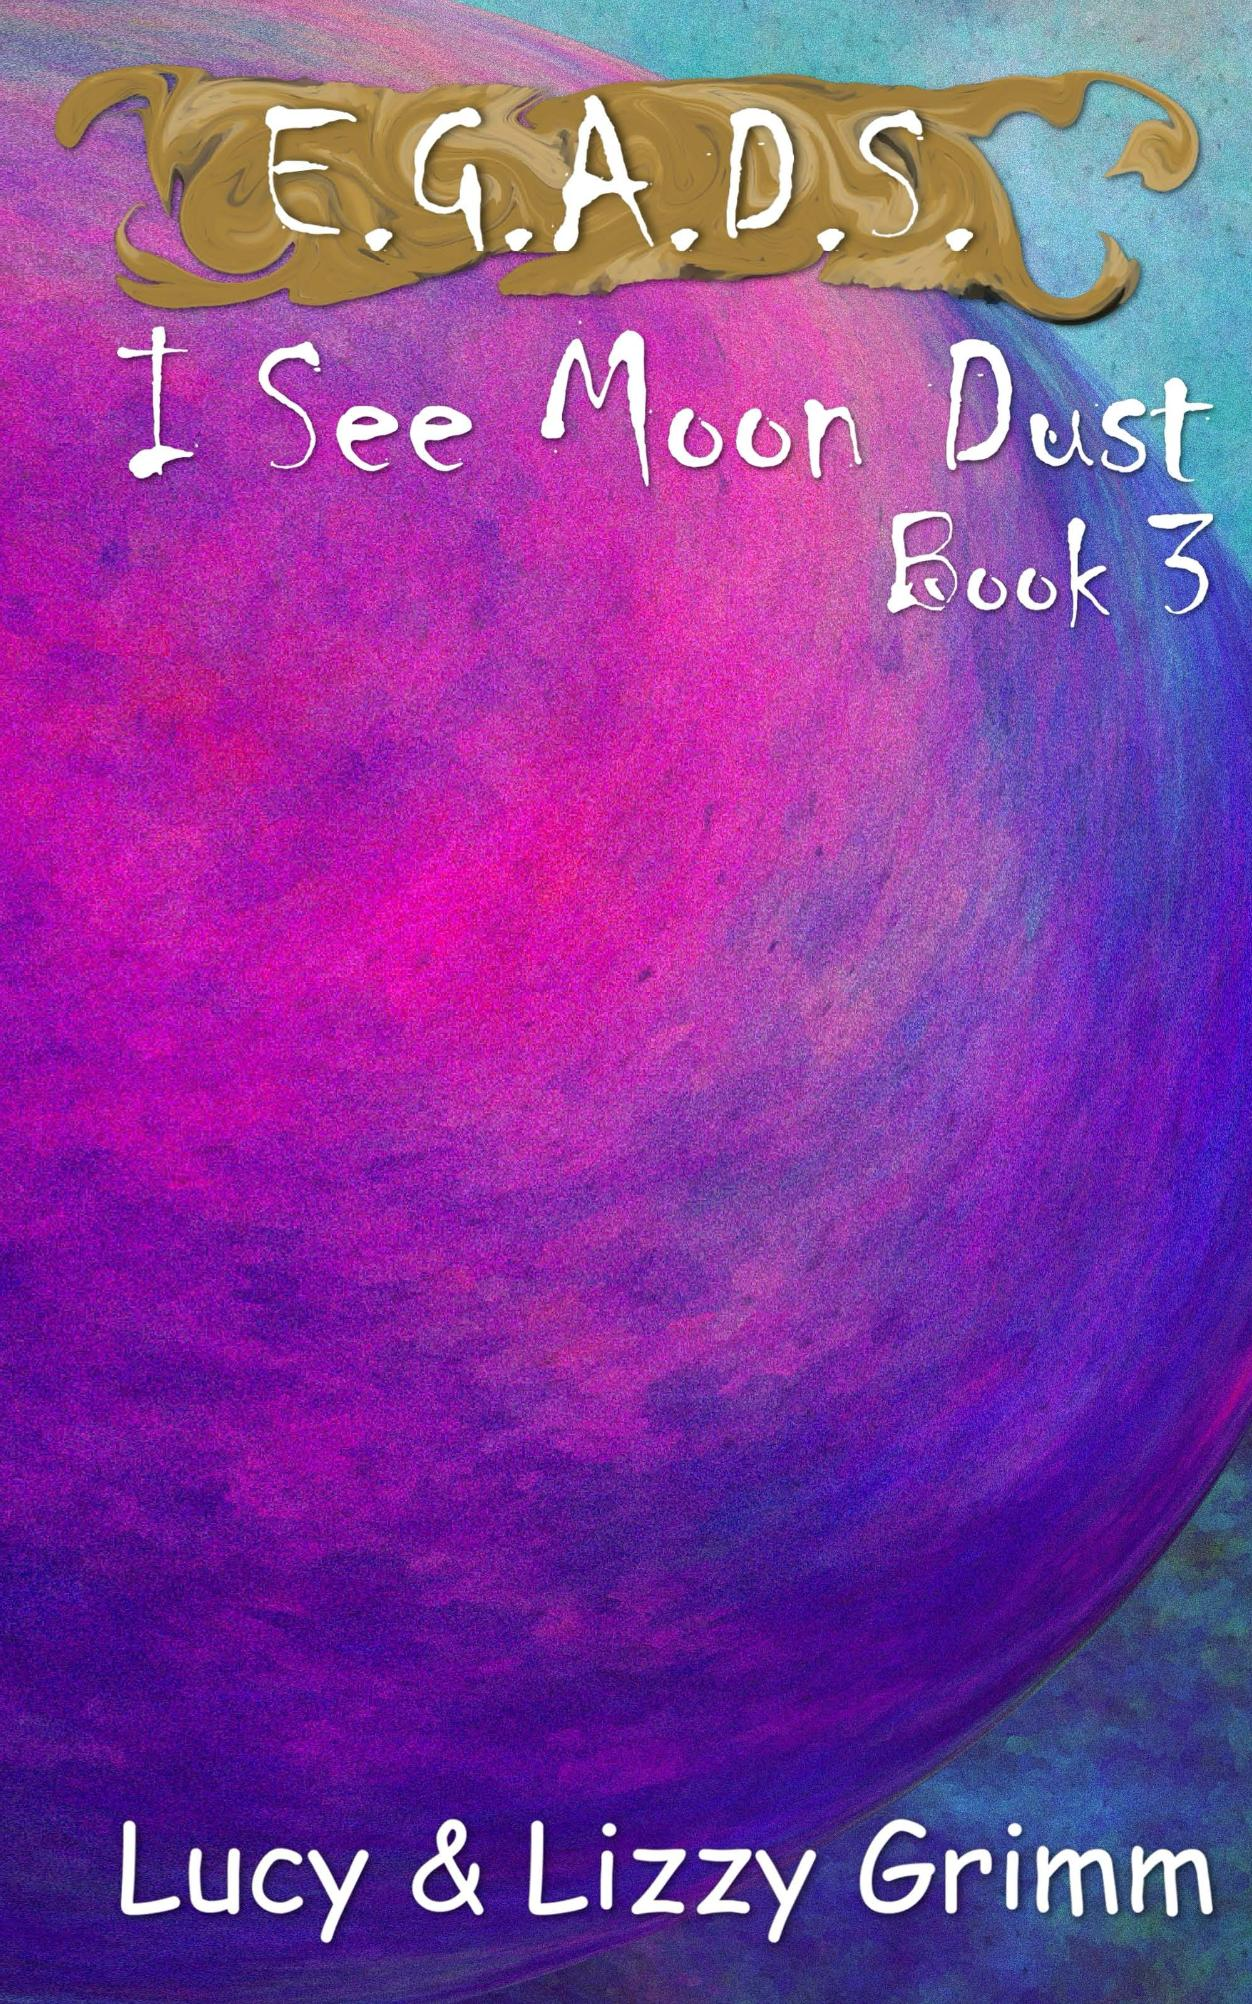 I See Moon Dust by Lucy & Lizzy Grimm